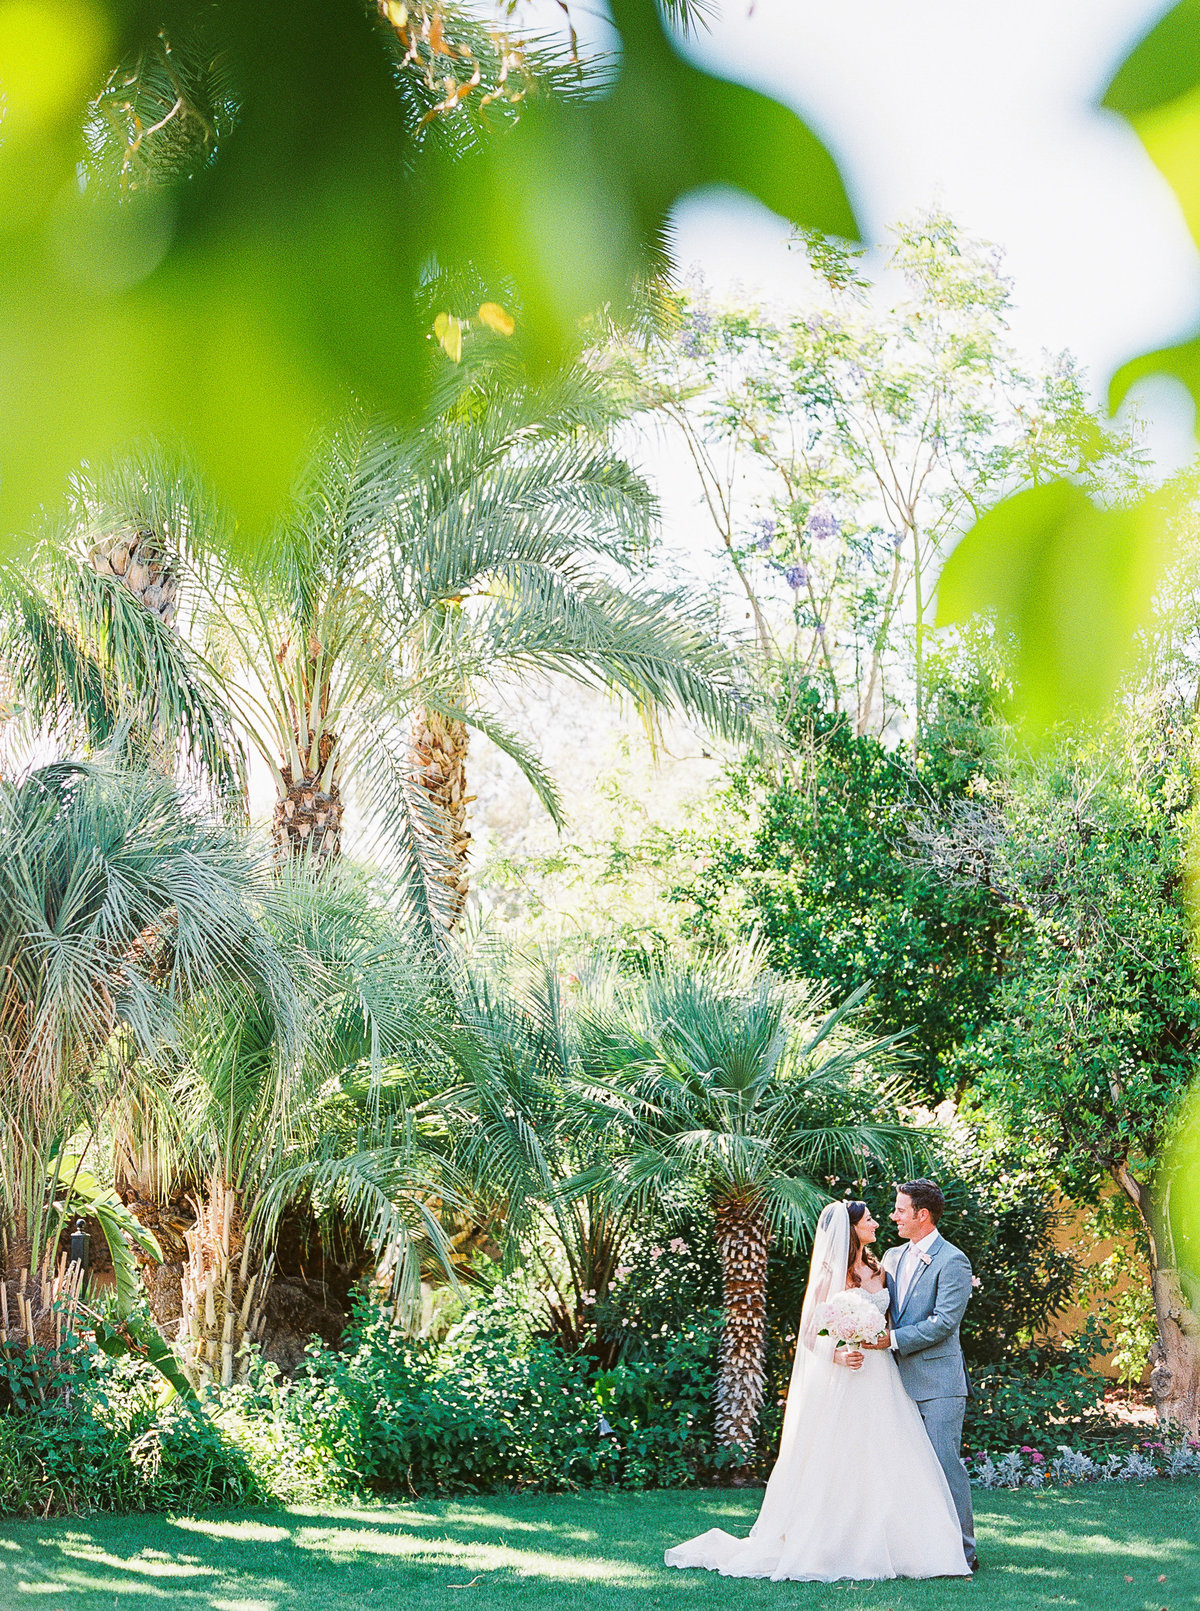 Imoni-Events-Elyse-Hall-Royal-Palms-136-01